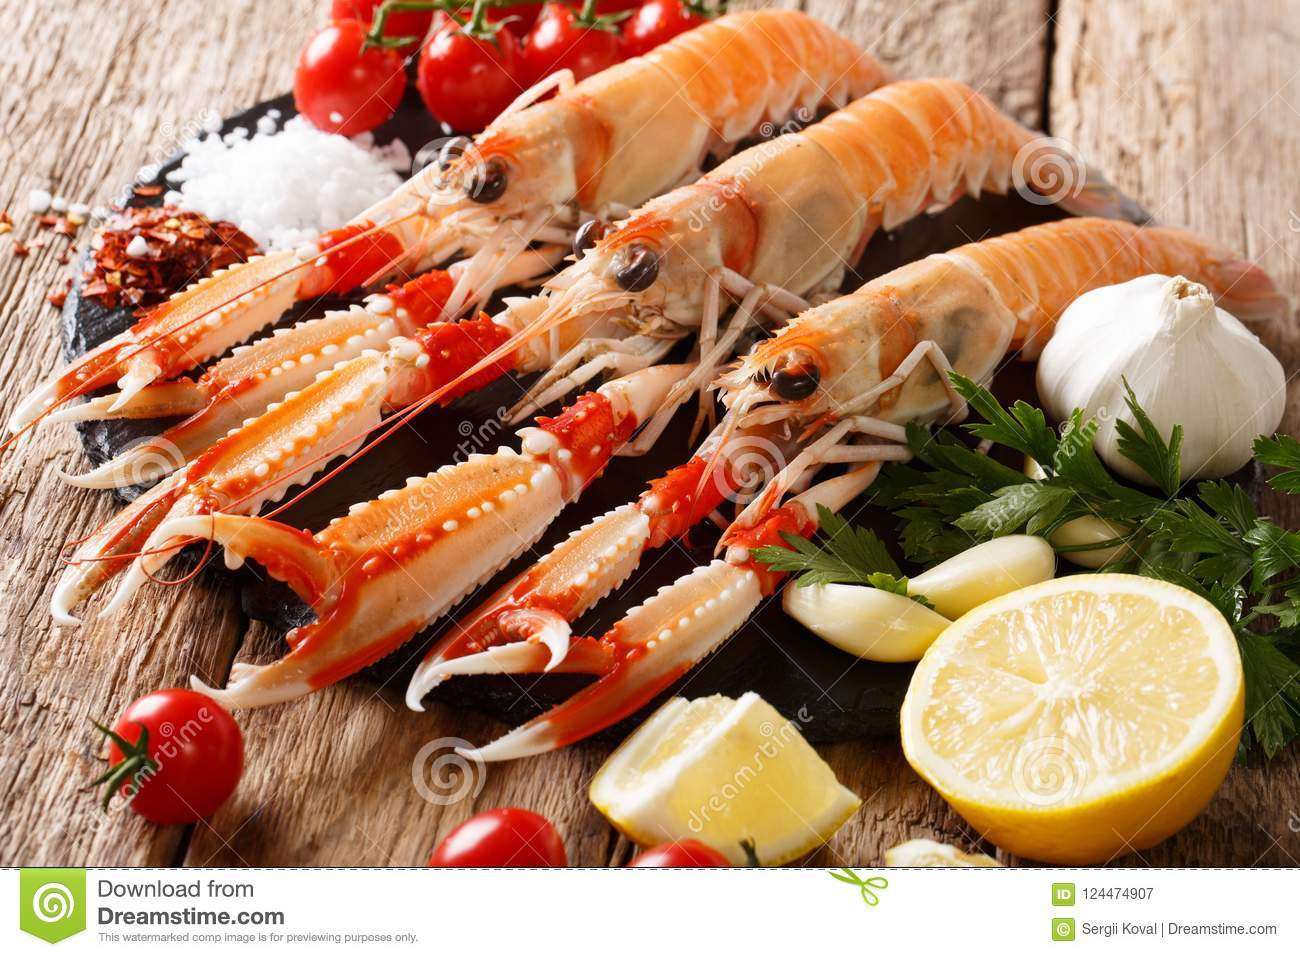 Raw fresh Nephrops norvegicus, Norway lobster, Dublin Bay prawn, langoustine or scampi close-up with ingredients. horizontal